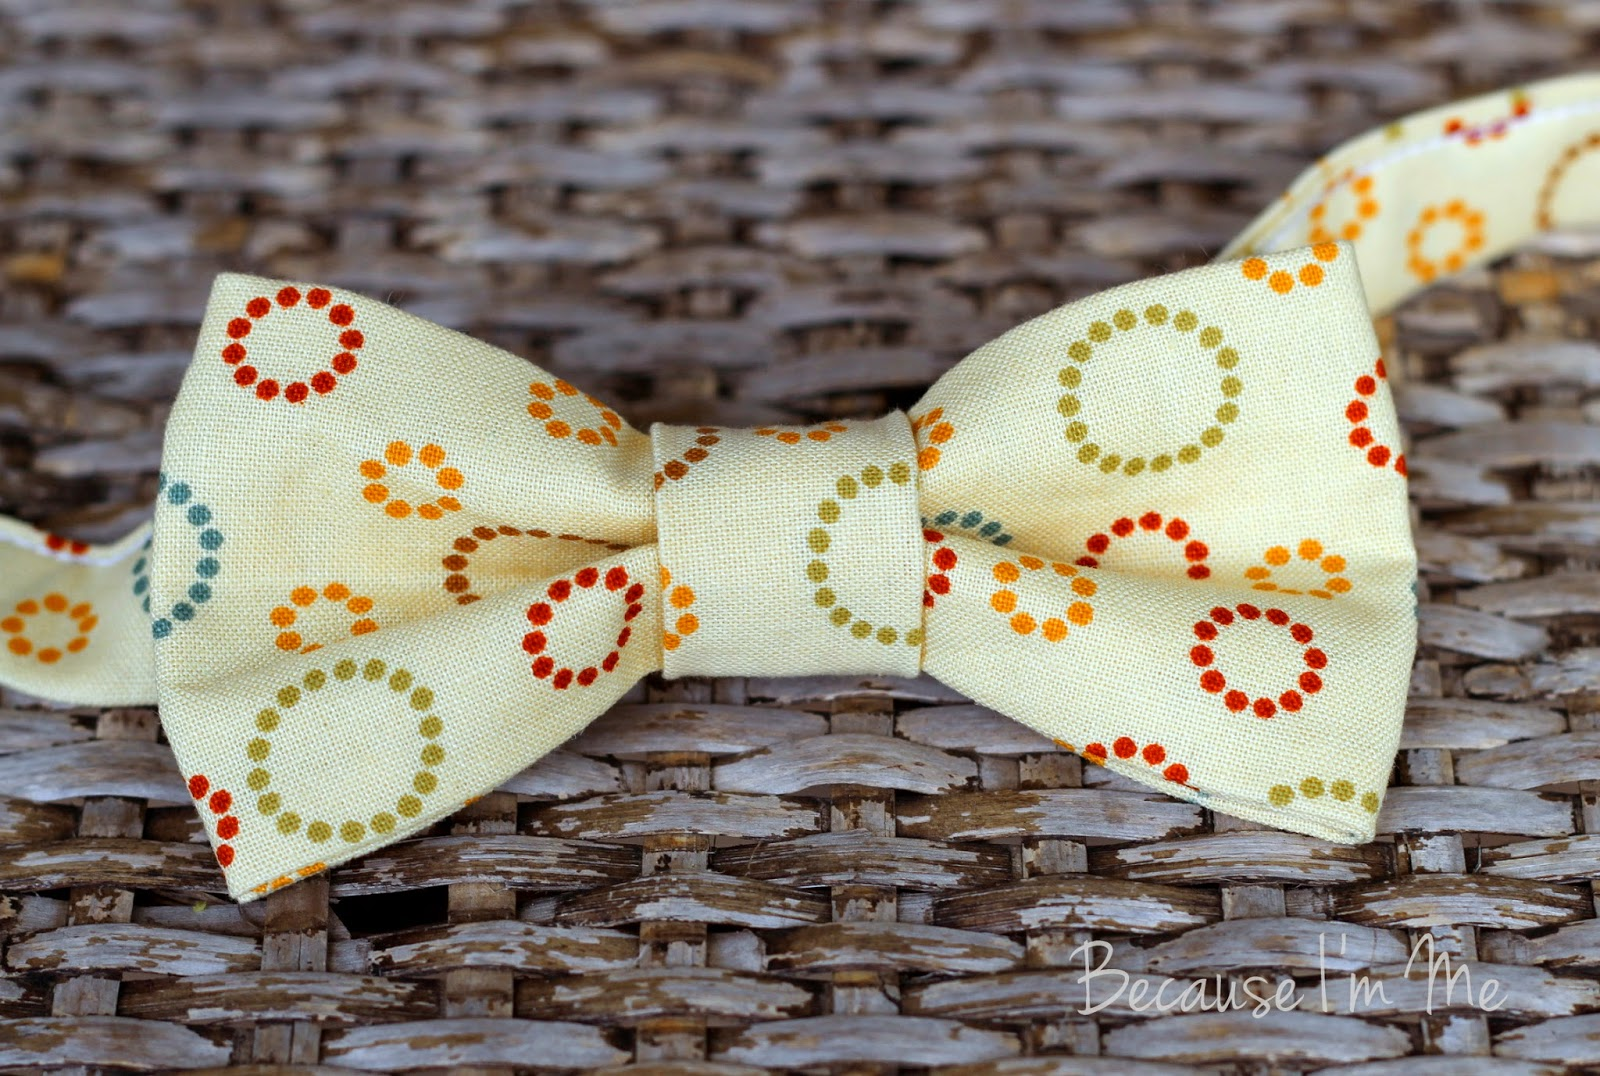 Because I'm Me yellow circular dot print cotton bow tie for infants, toddlers, boys, and men